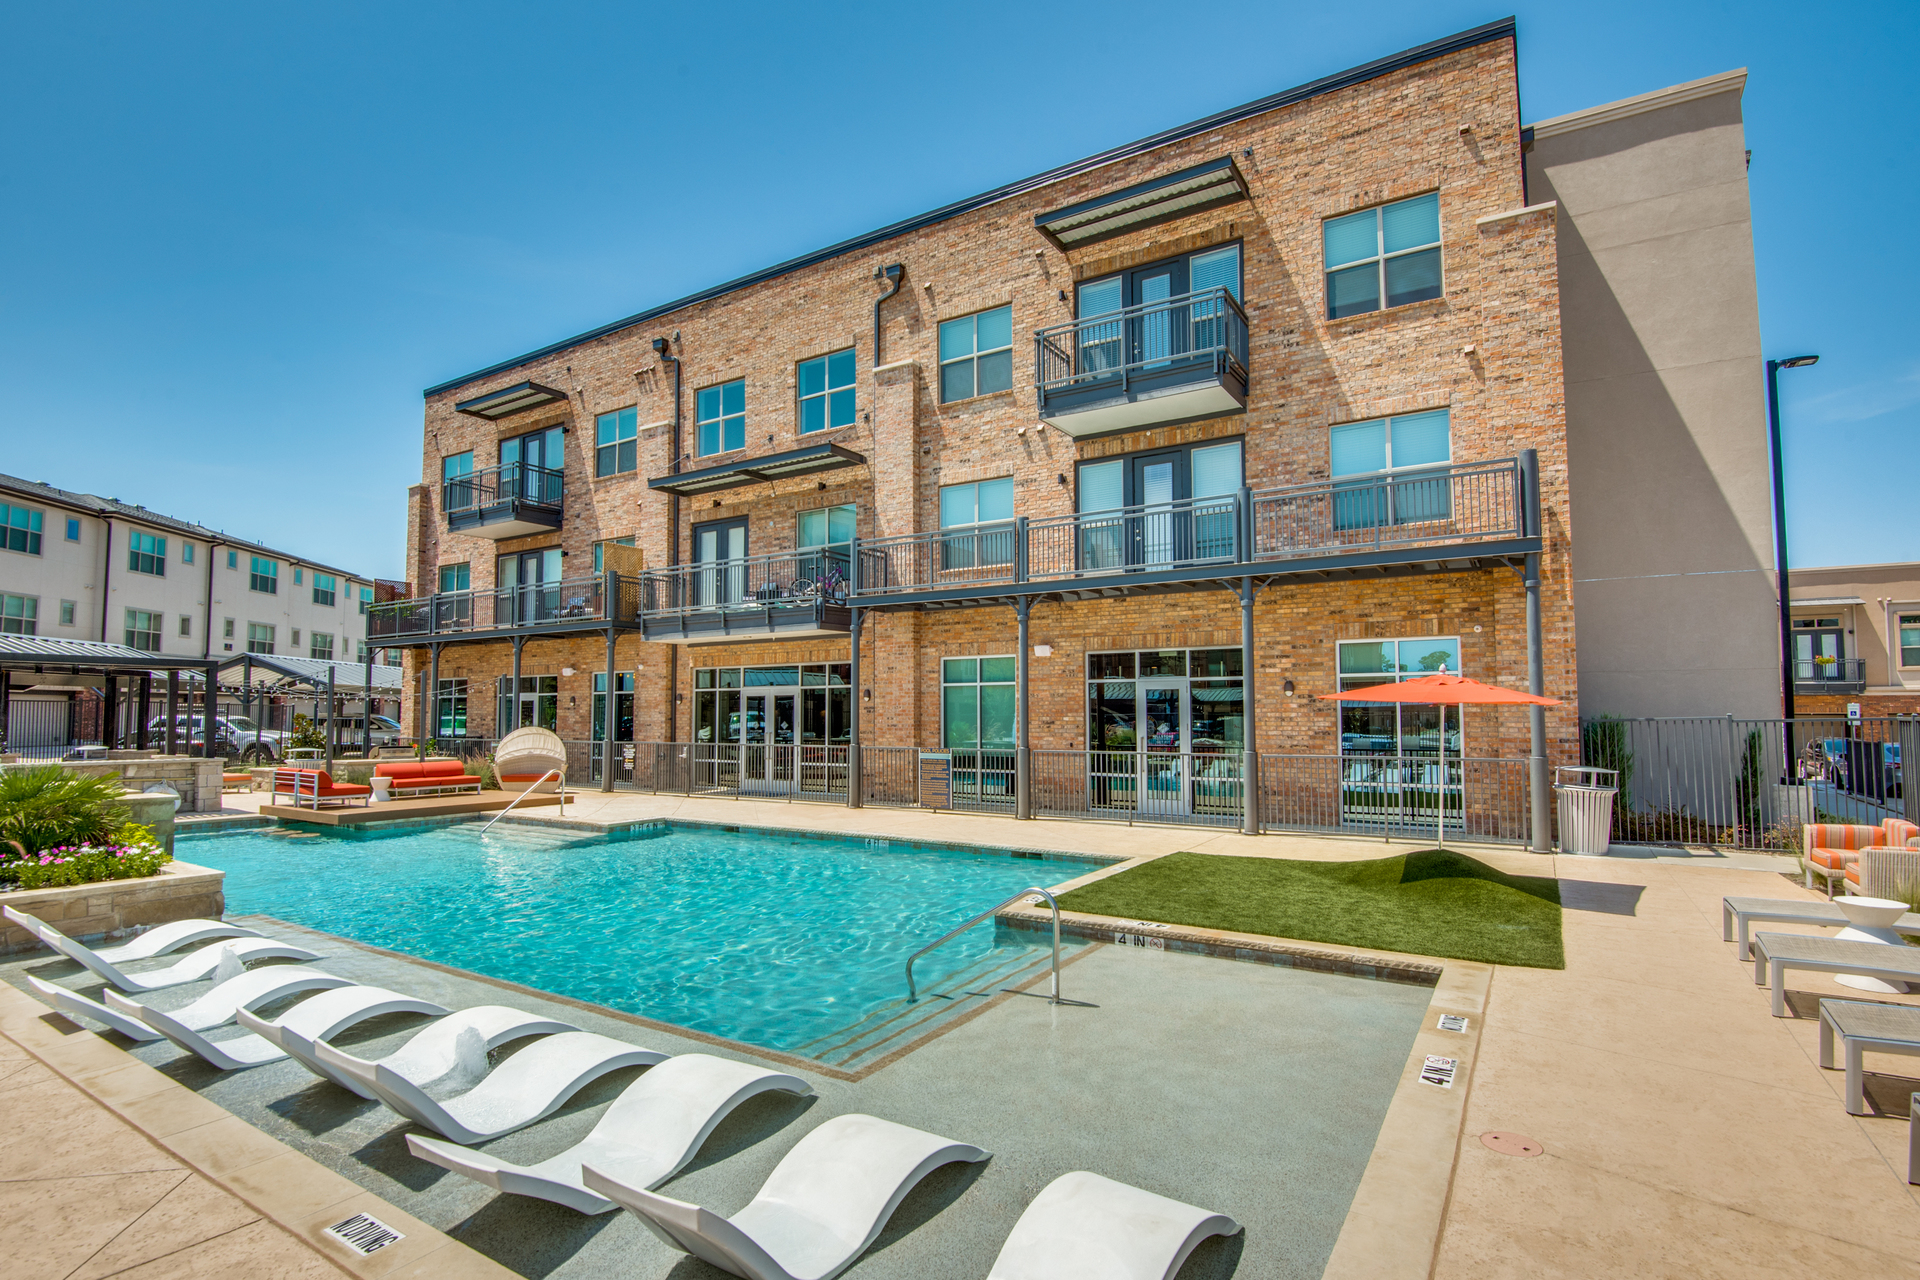 The refreshing swimming pool at Hillstone River Walk luxury apartments and townhomes in Flower Mound, Texas, by Hensley Lamkin Rachel, Inc.